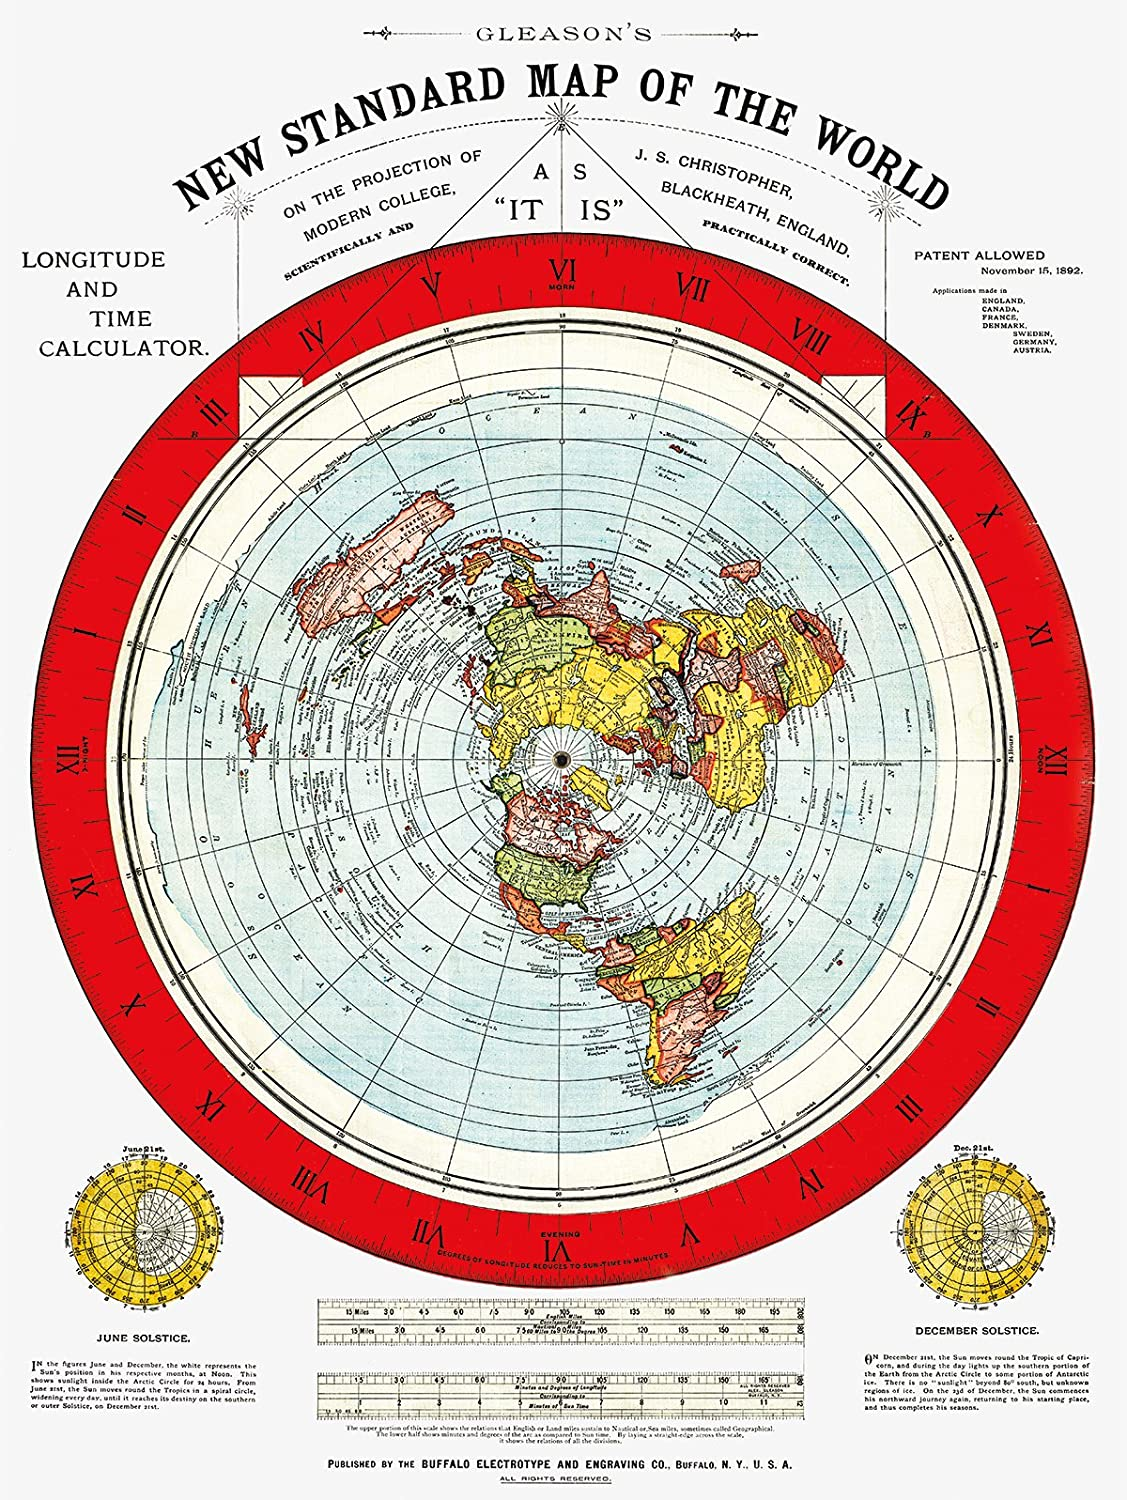 Flat Earth Map Hd Amazon.com: Flat Earth Map   Gleason's New Standard Map of The